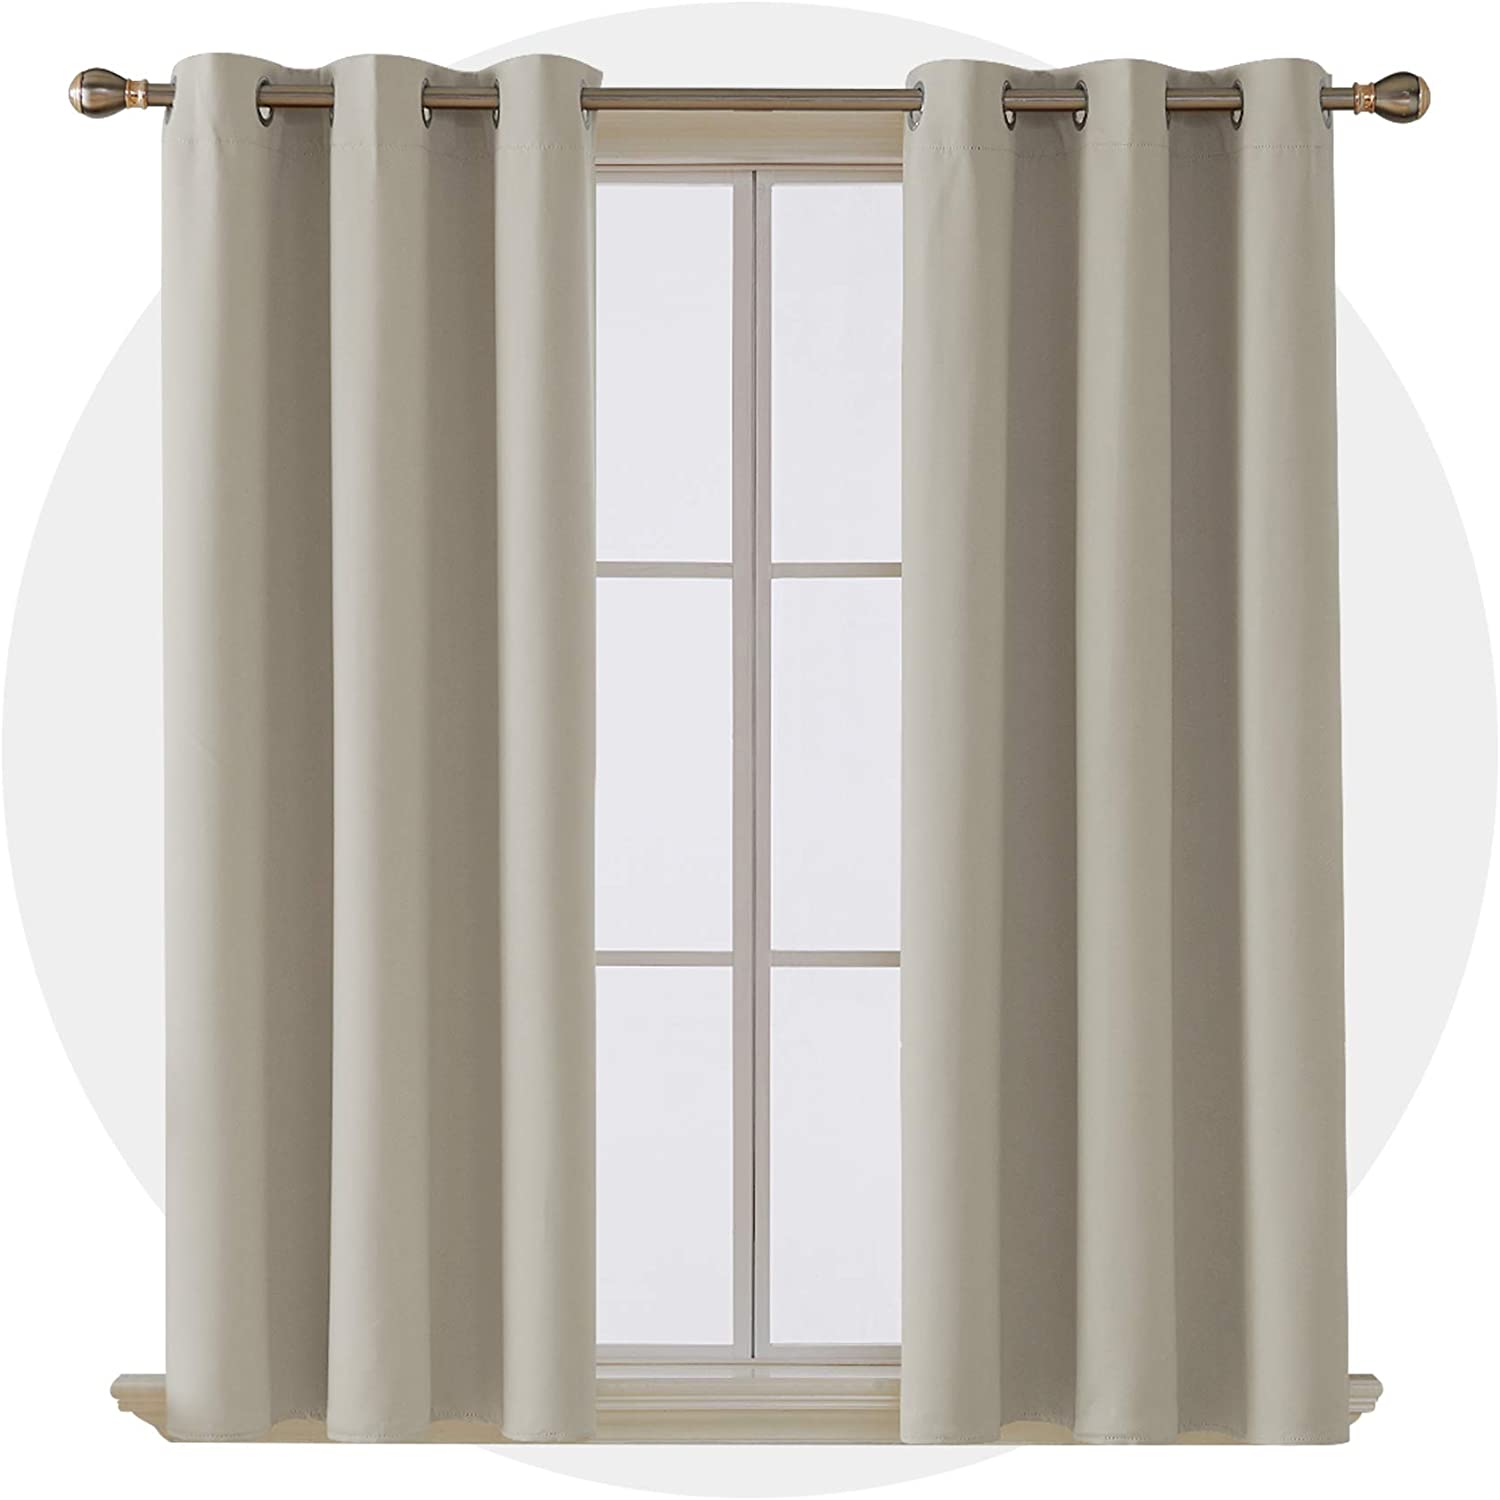 Deconovo Room Darkening Grommet Curtain Panel Thermal Insulated Blackout Curtains for Bedroom 42x63 Inch Light Beige Four Panels